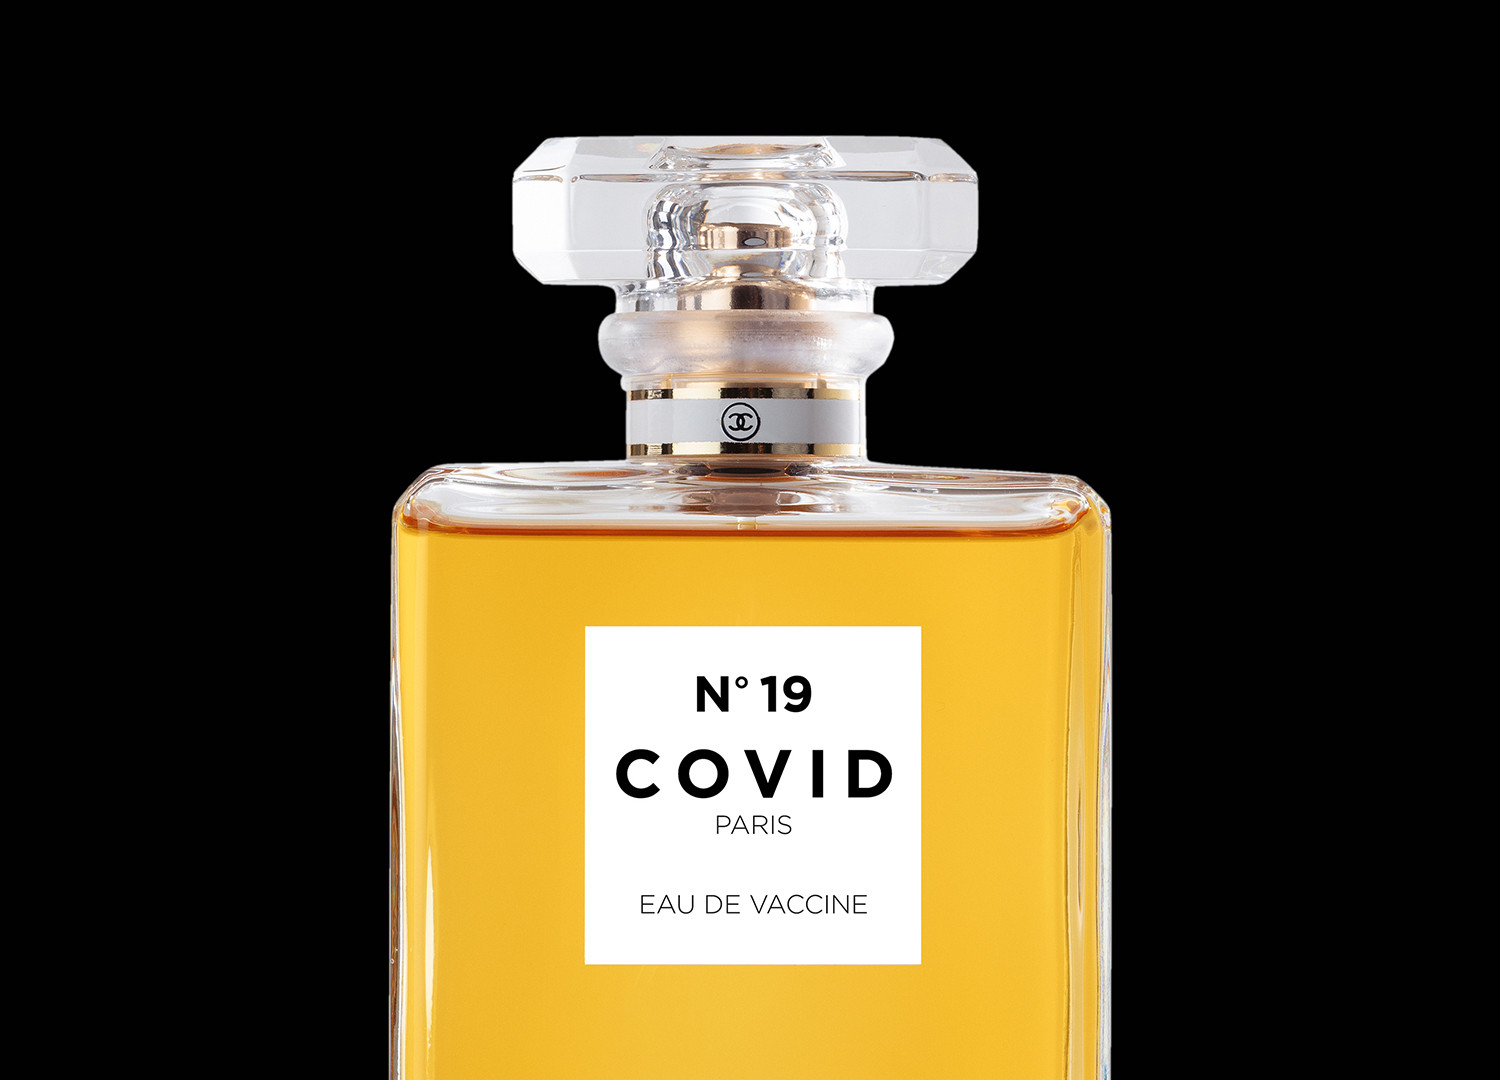 COVID No.19 EAU DE VACCINE (Black)